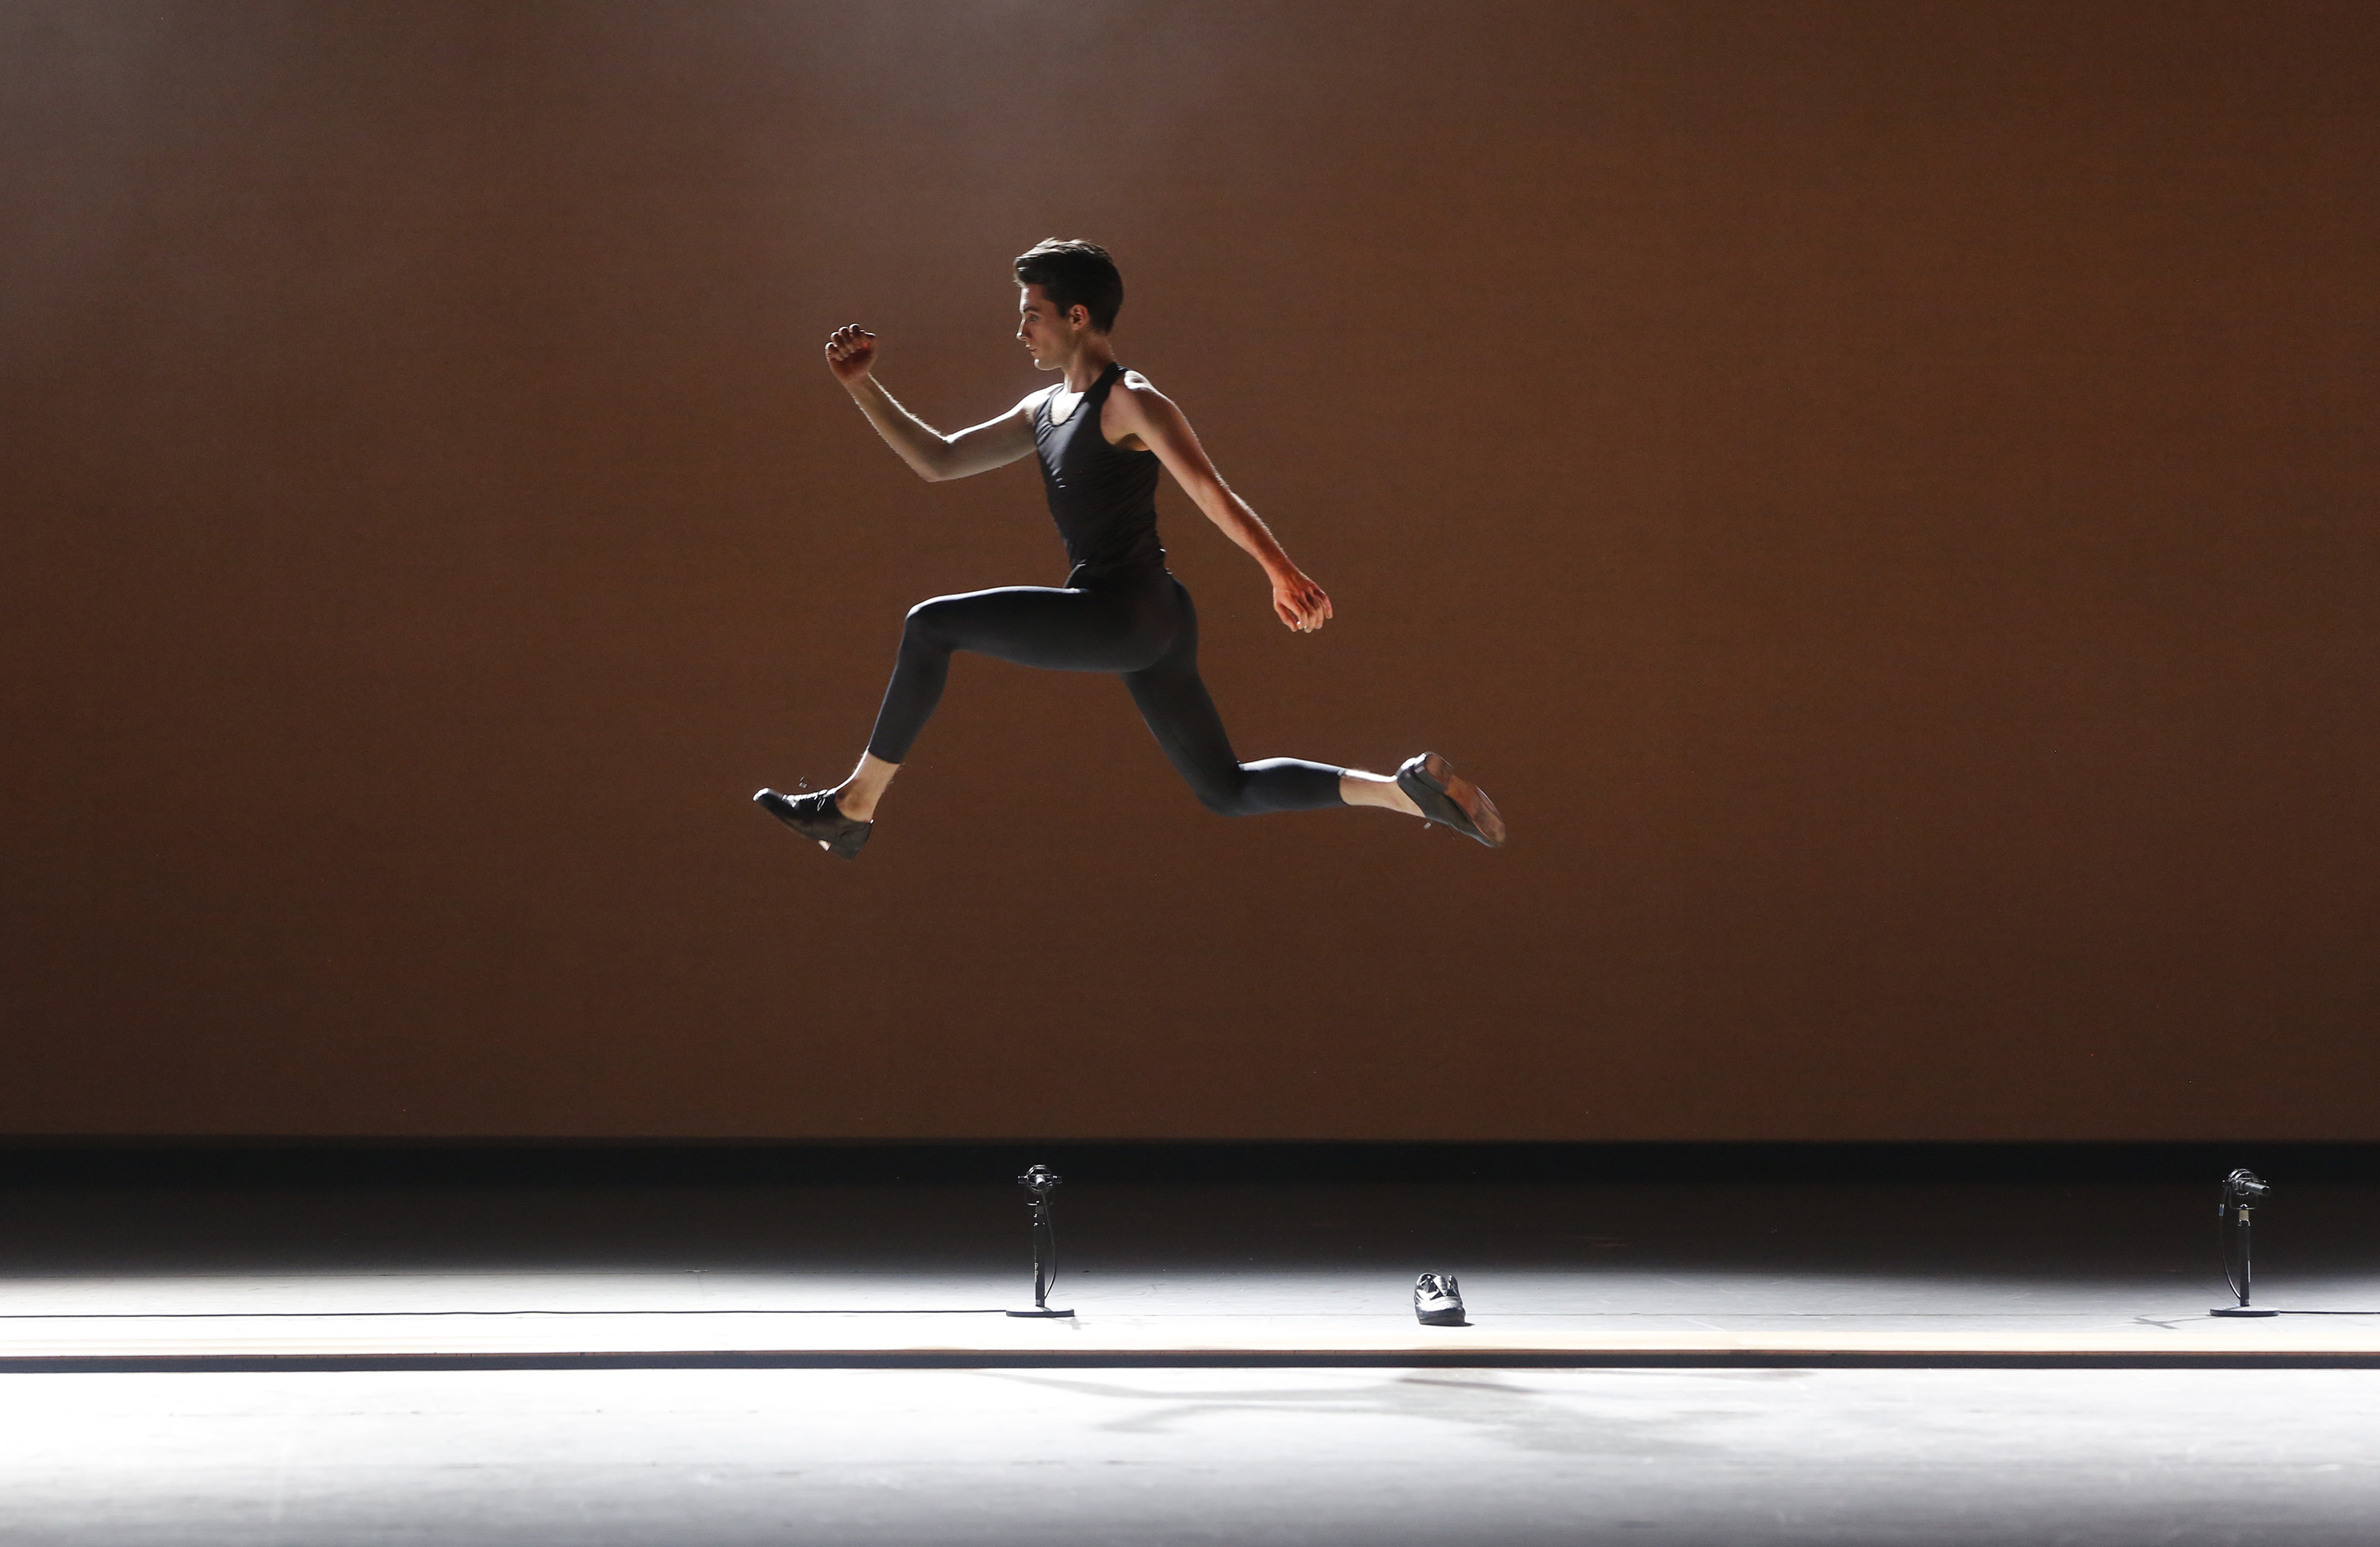 A Letter to Danseurs: ABT's Patrick Frenette Shares What He's Learned With the Next Generation of Young, Male Ballet Dancers